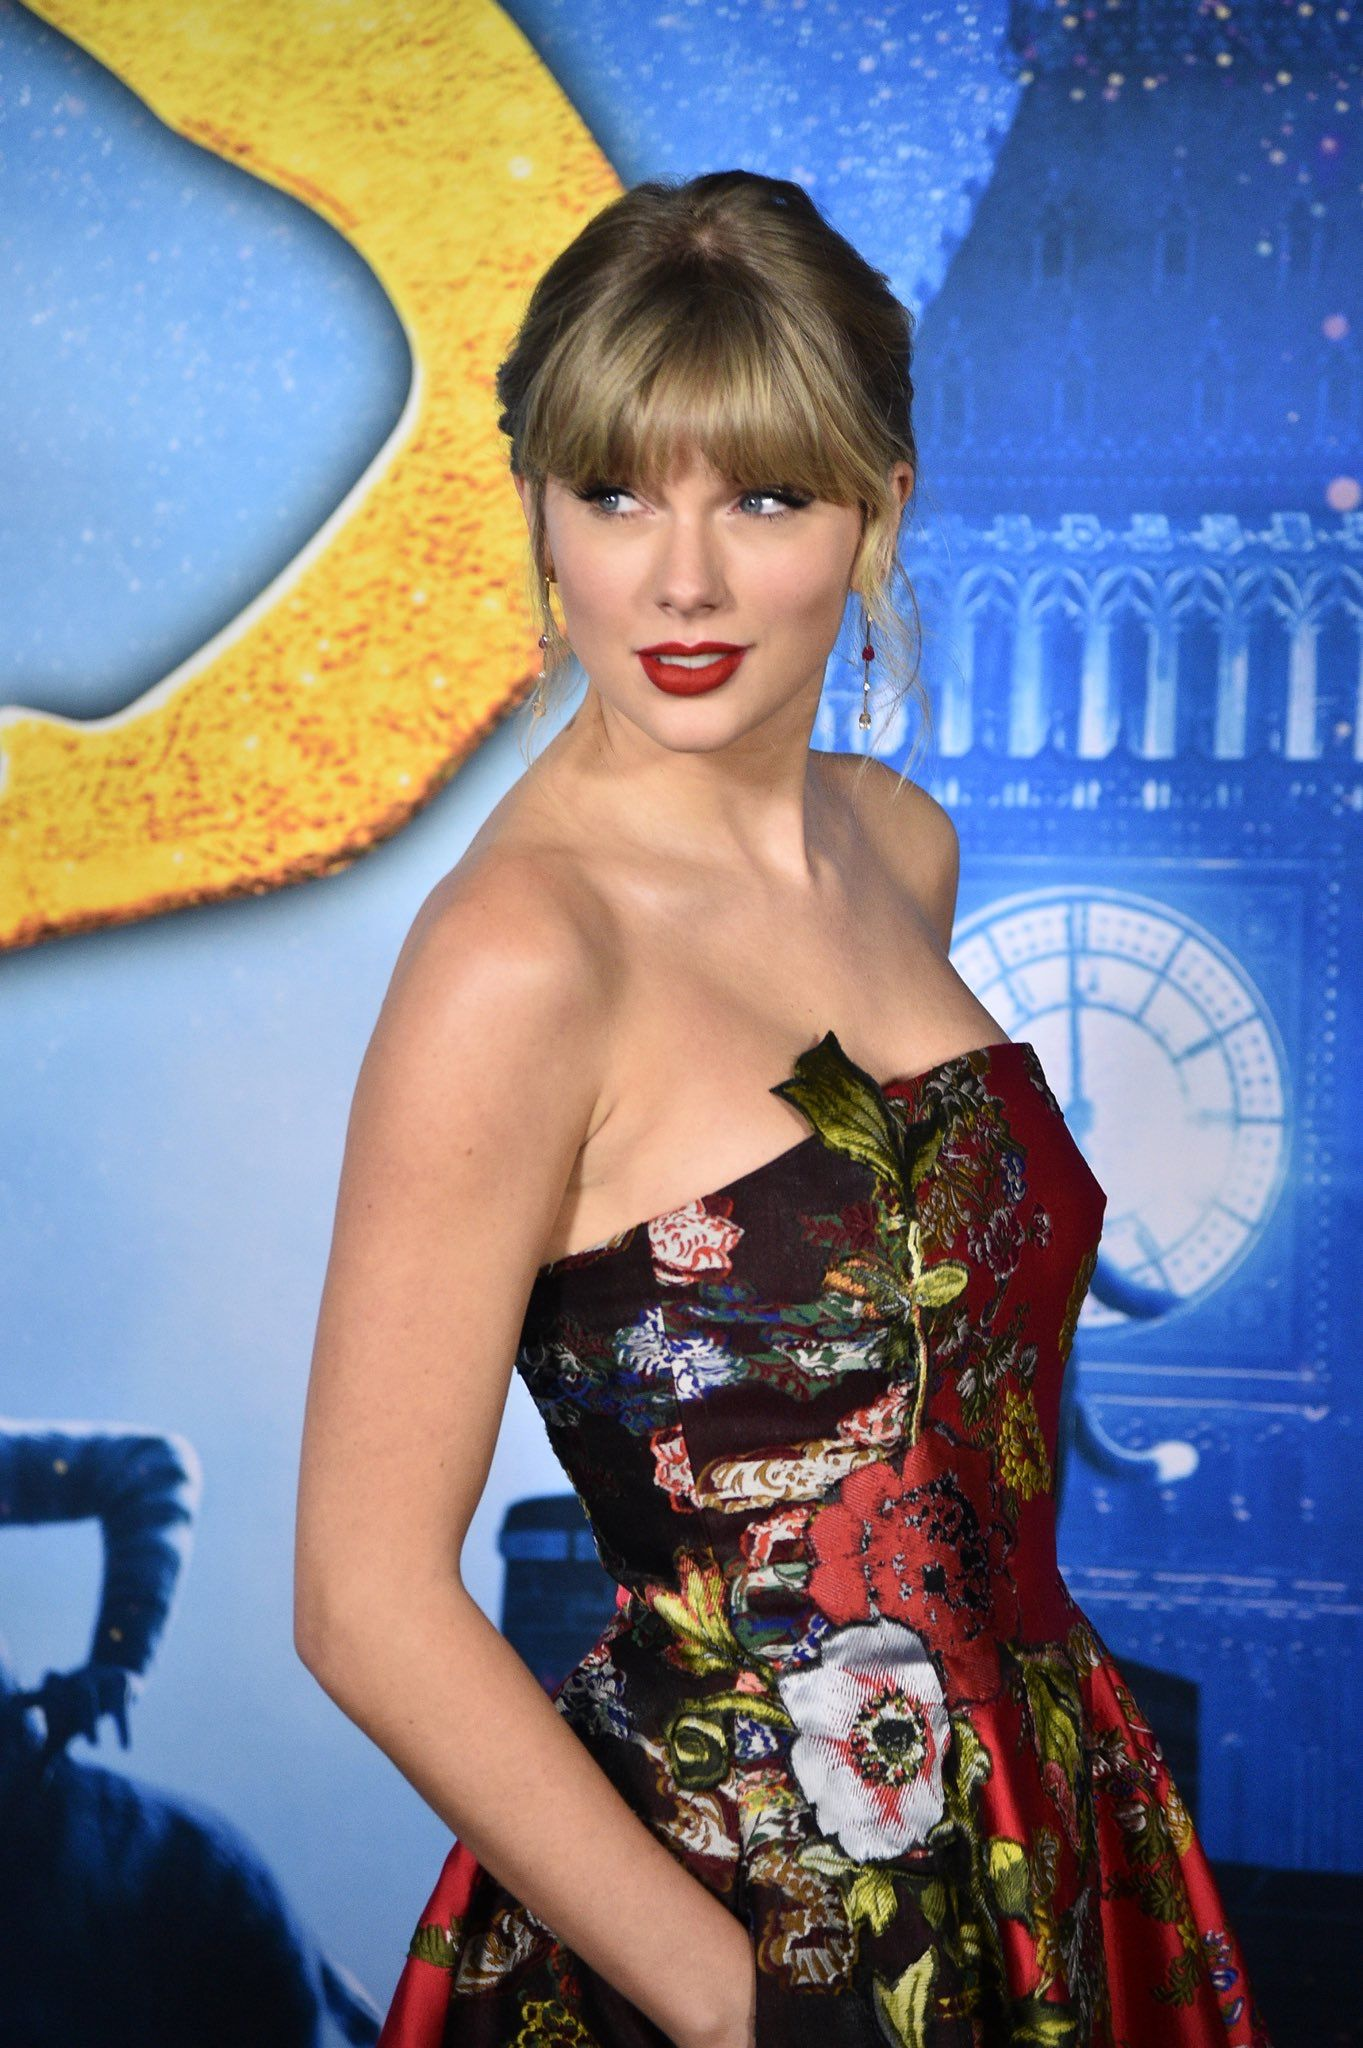 Vicky love taylor in 2020 Taylor swift web, Taylor